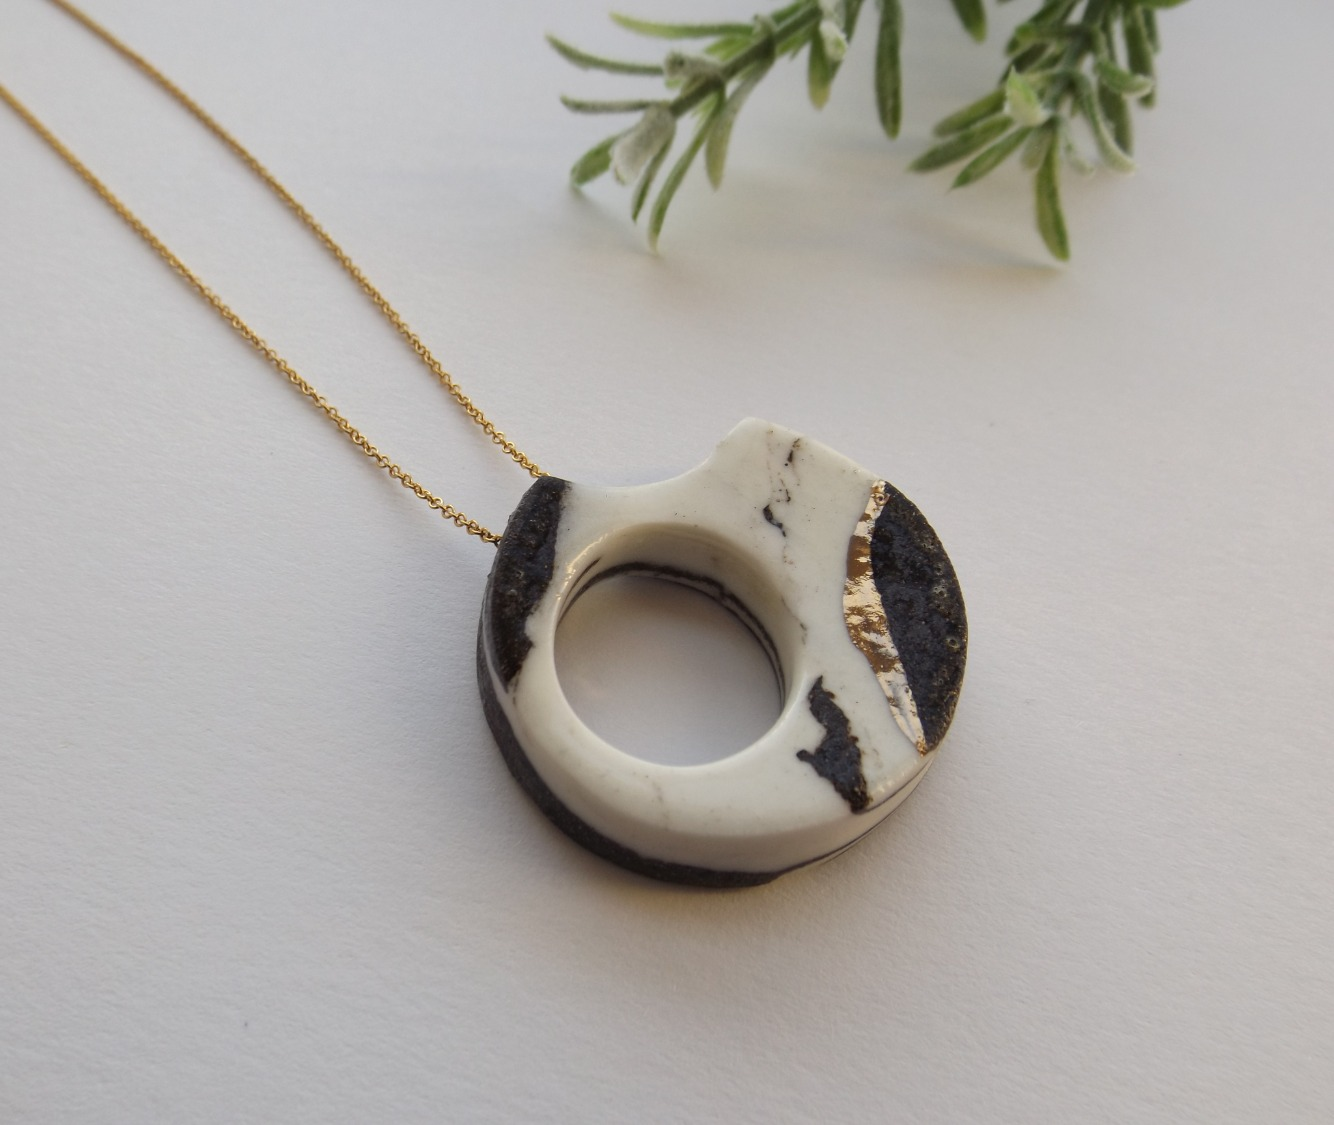 'Abstract' necklace from the Black & White collection.